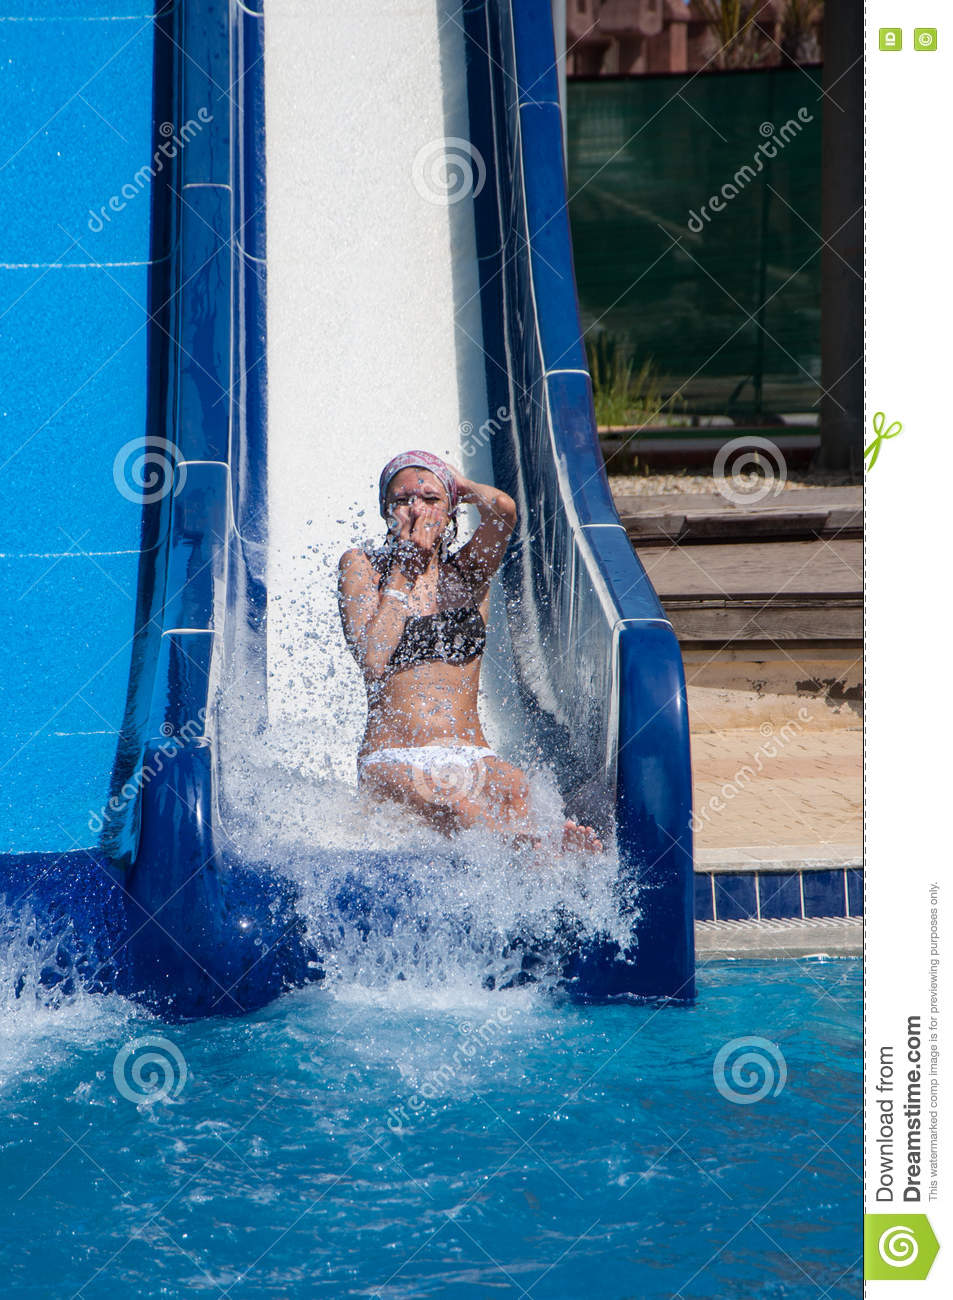 Girl sliding down water slides